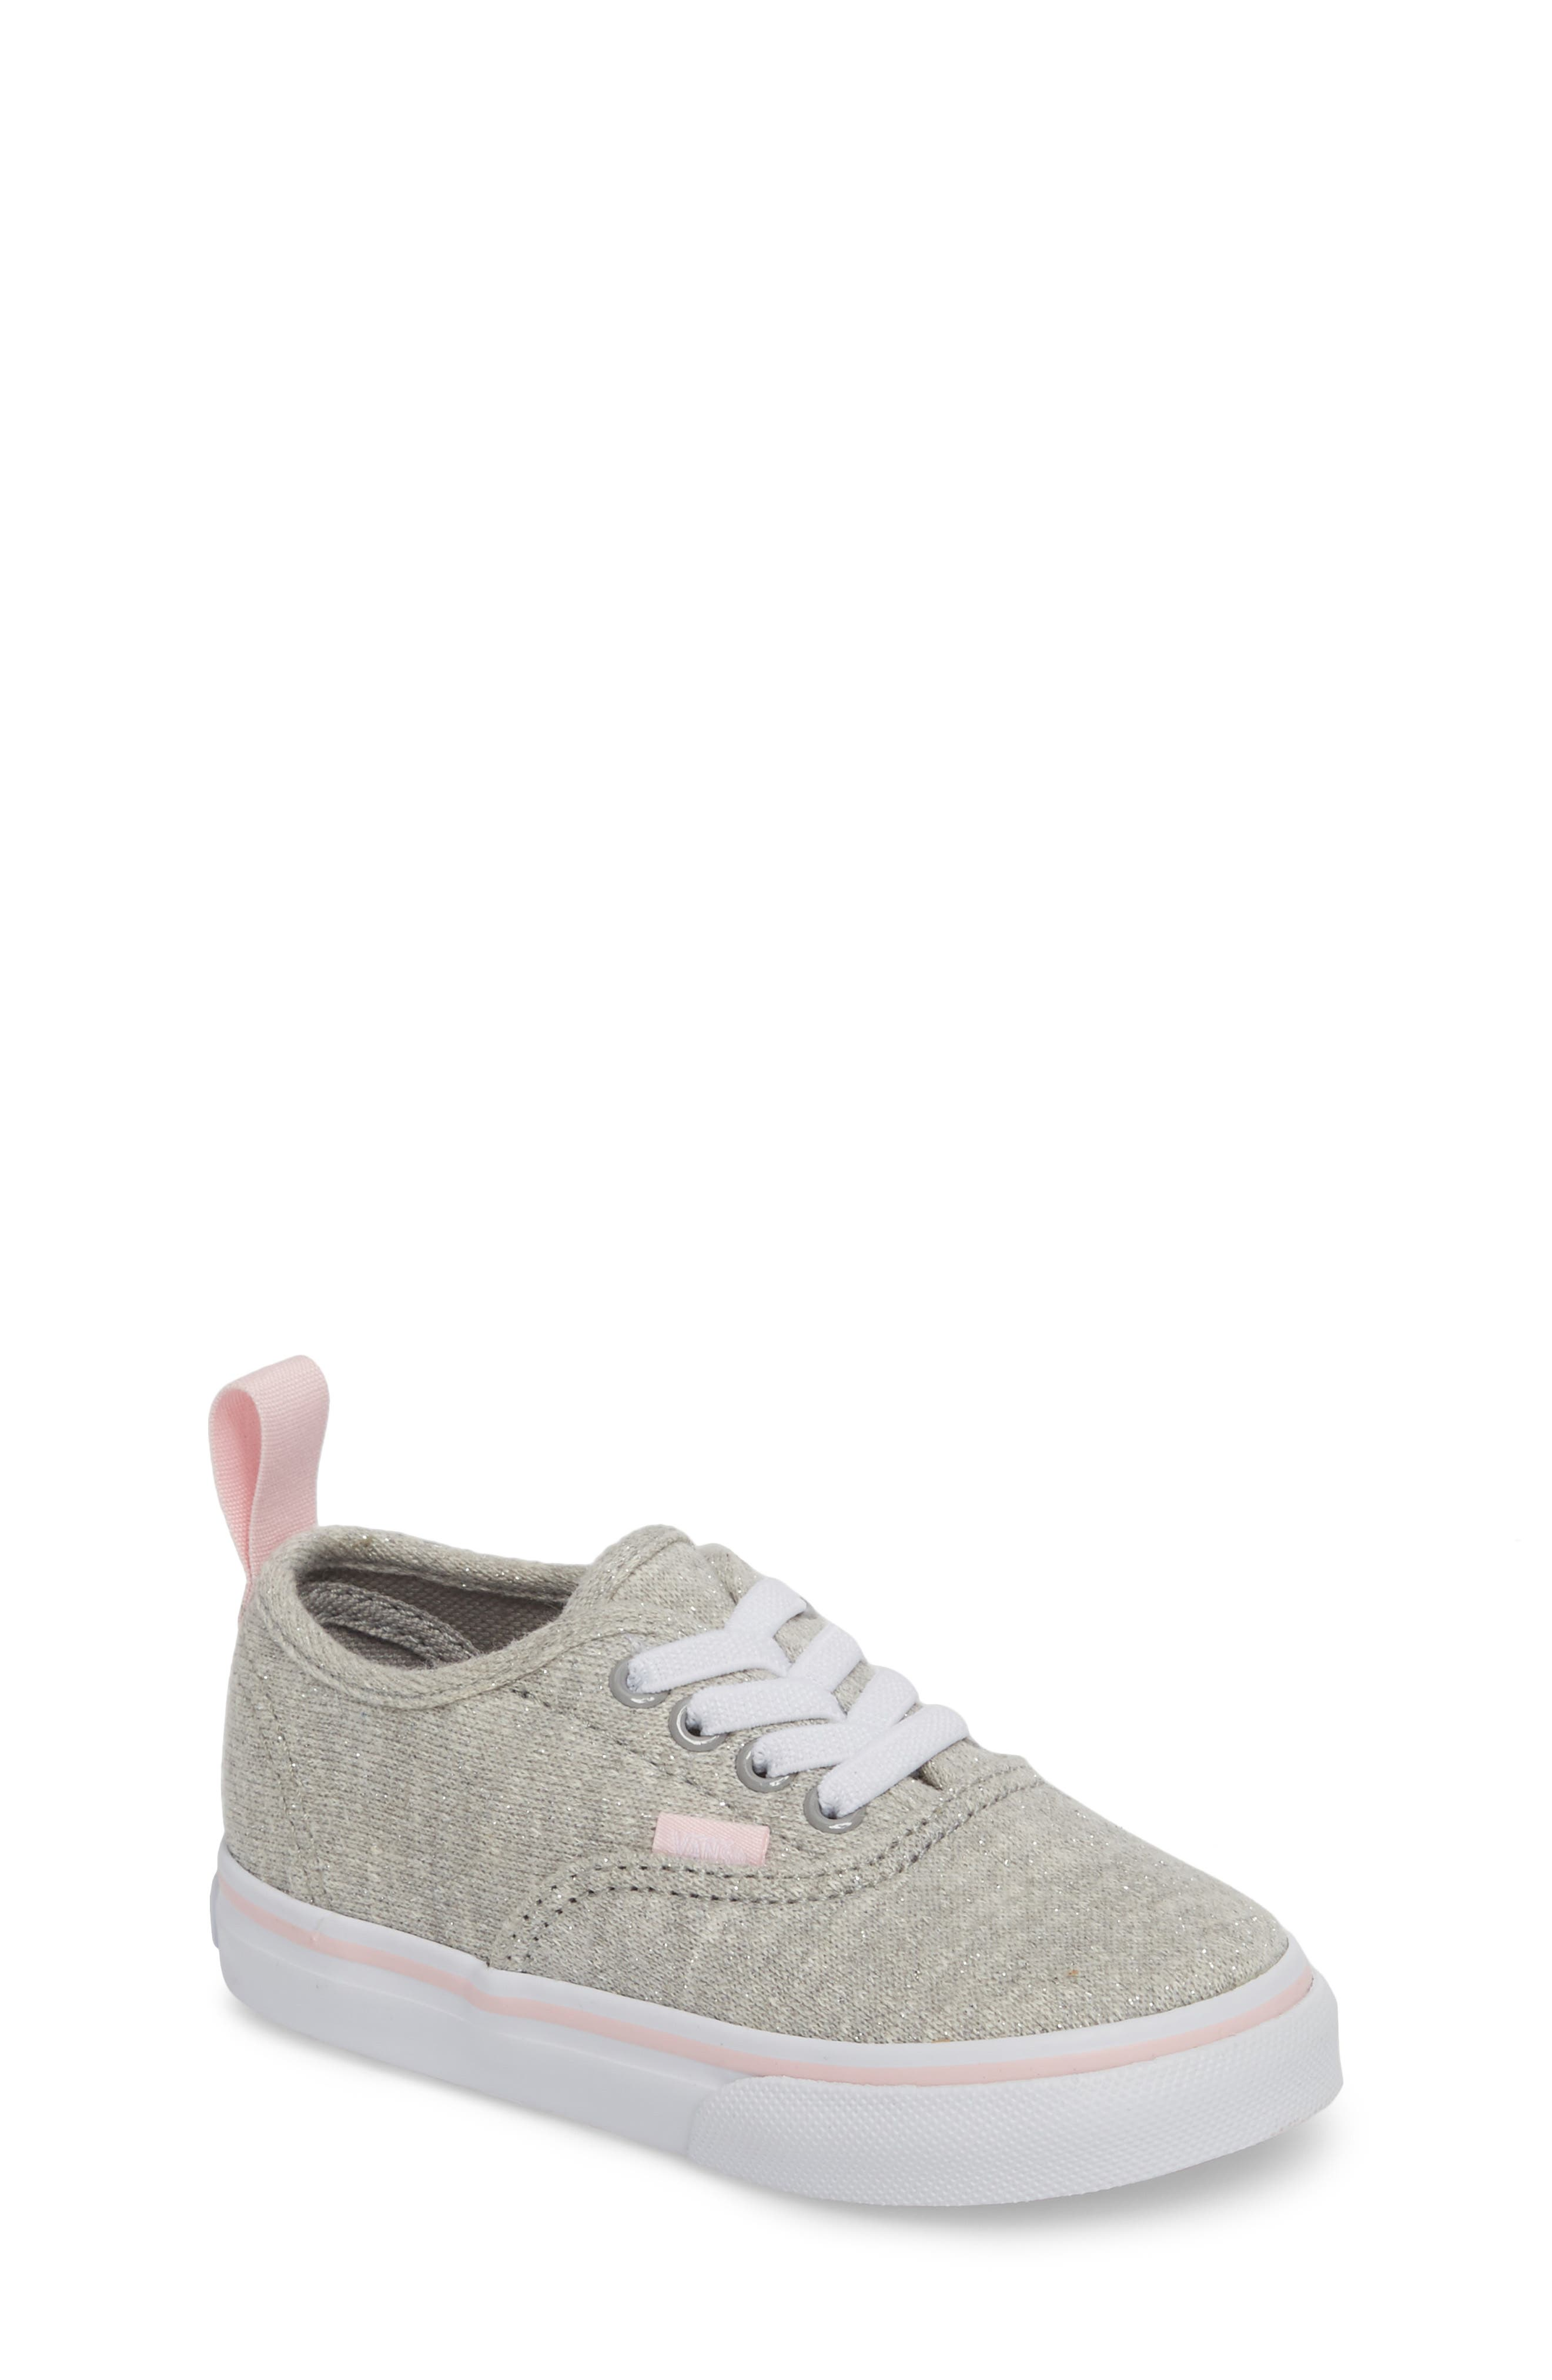 Authentic Glitter Sneaker,                         Main,                         color, Gray/ Pink Shimmer Jersey